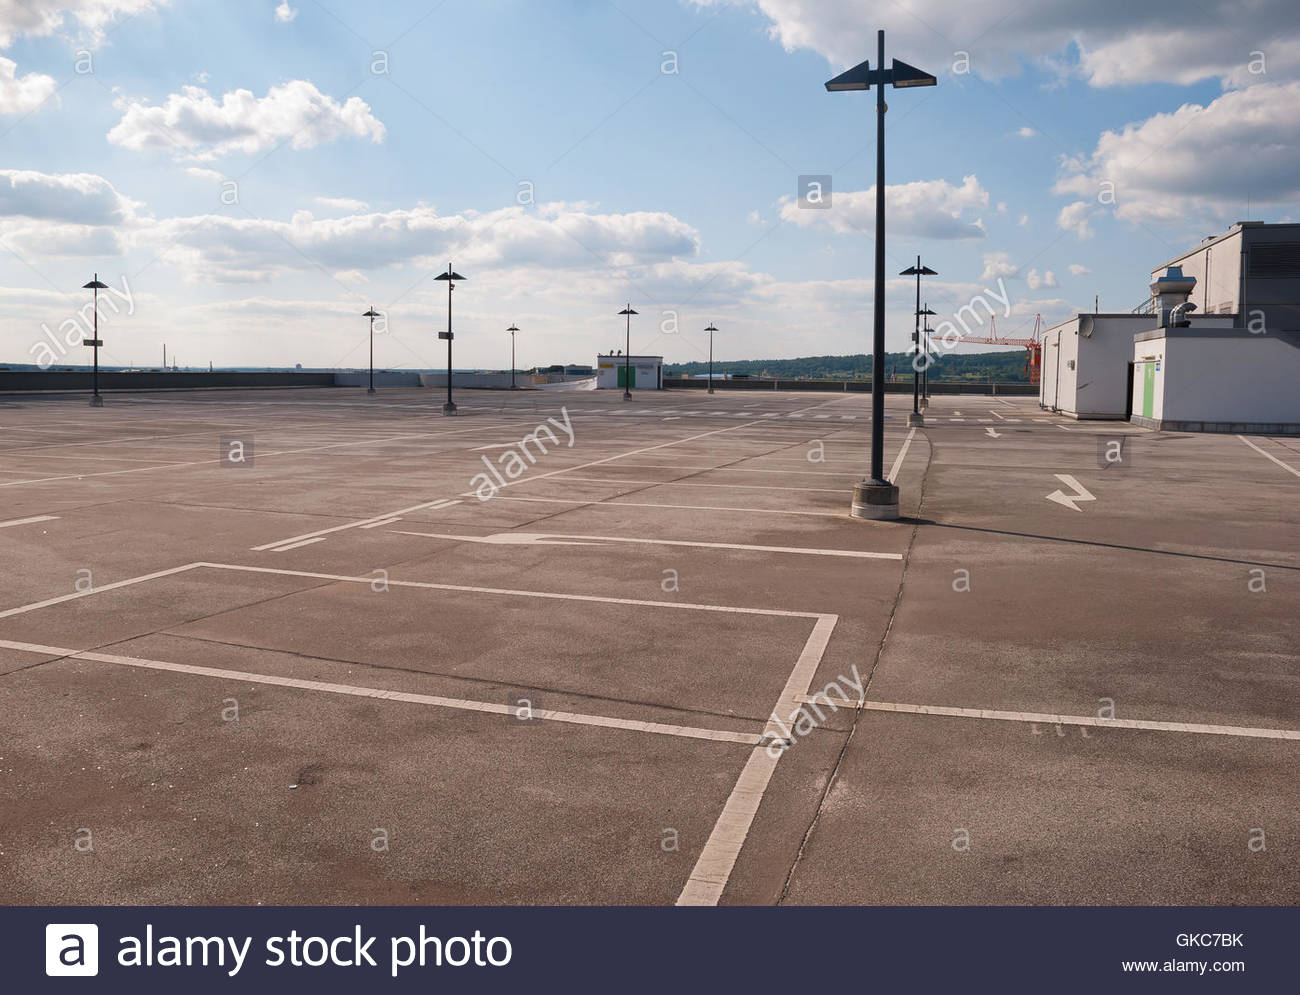 concrete parking place loneliness - Stock Image